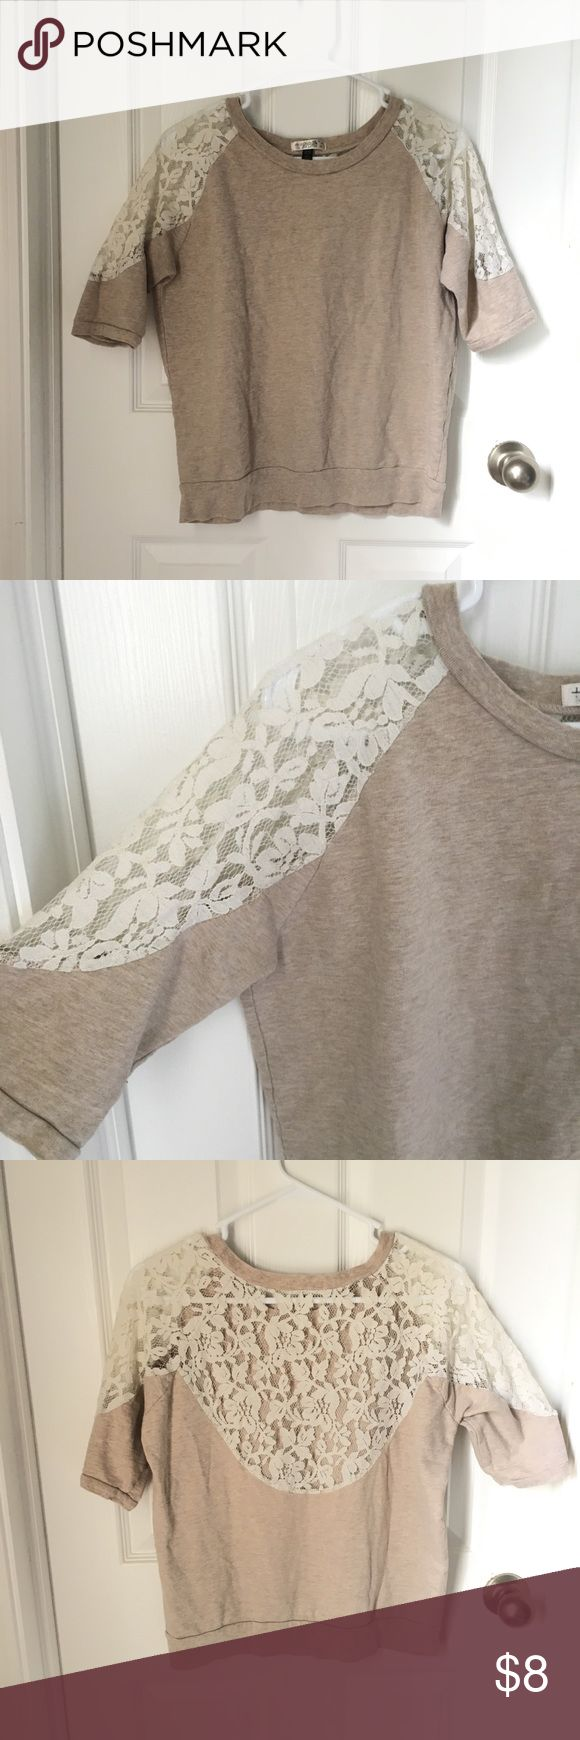 Tan Lace Back Half Sleeve Shirt Tan lace back shirt. This shirt is so pretty and girly. I love the tan color with the lace. I also (I also pictured this shirt with the shorts w/ crochet/lace and the boots) Sound & Matter Tops